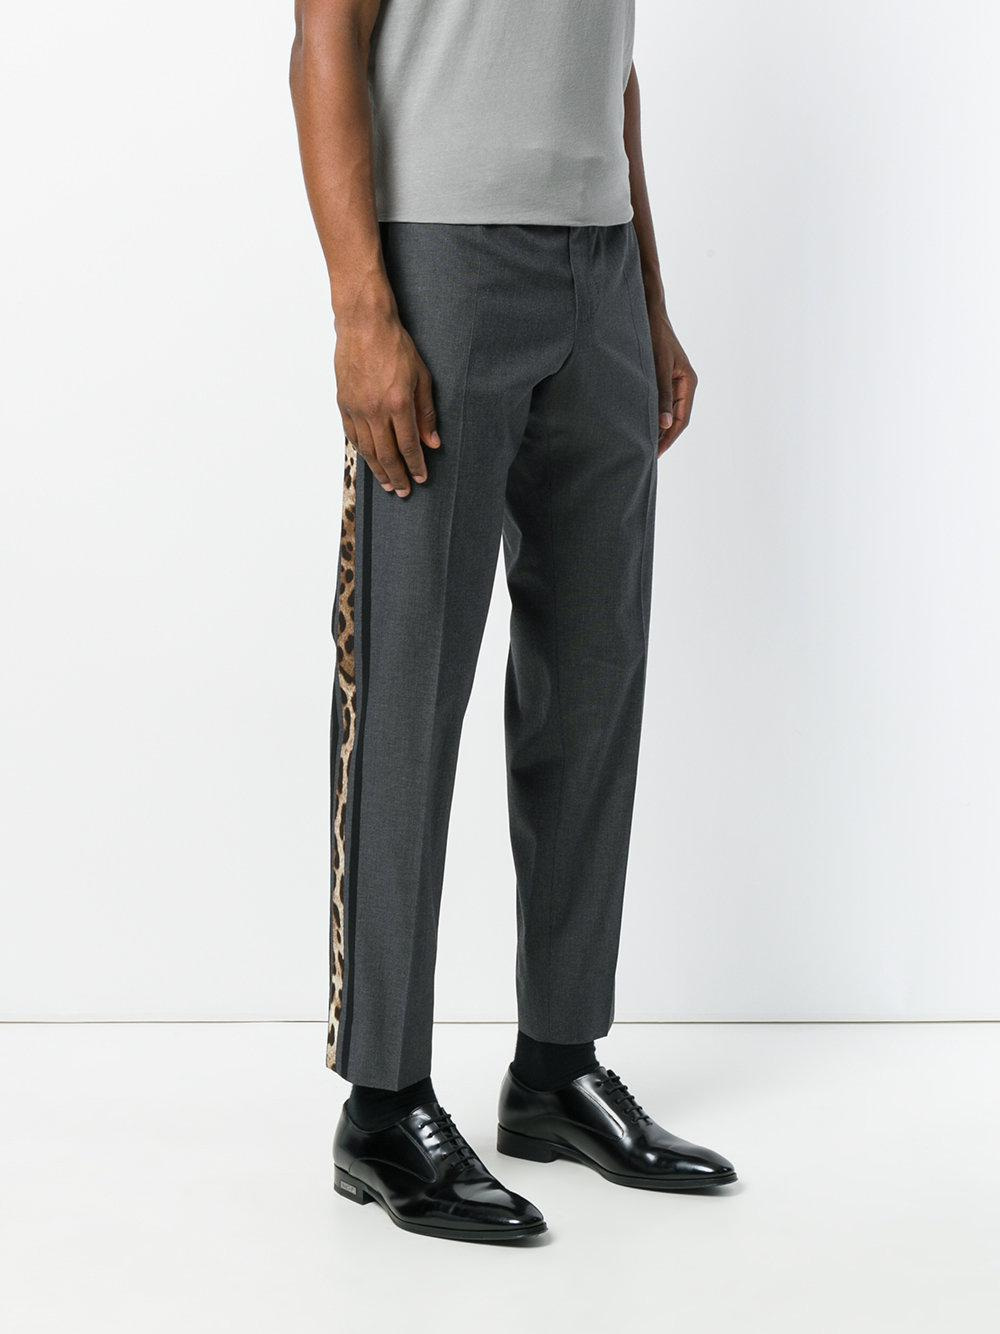 Clearance Low Price Fee Shipping Pre Order Online leopard print stripe tailored trousers - Grey Dolce & Gabbana sV0f5